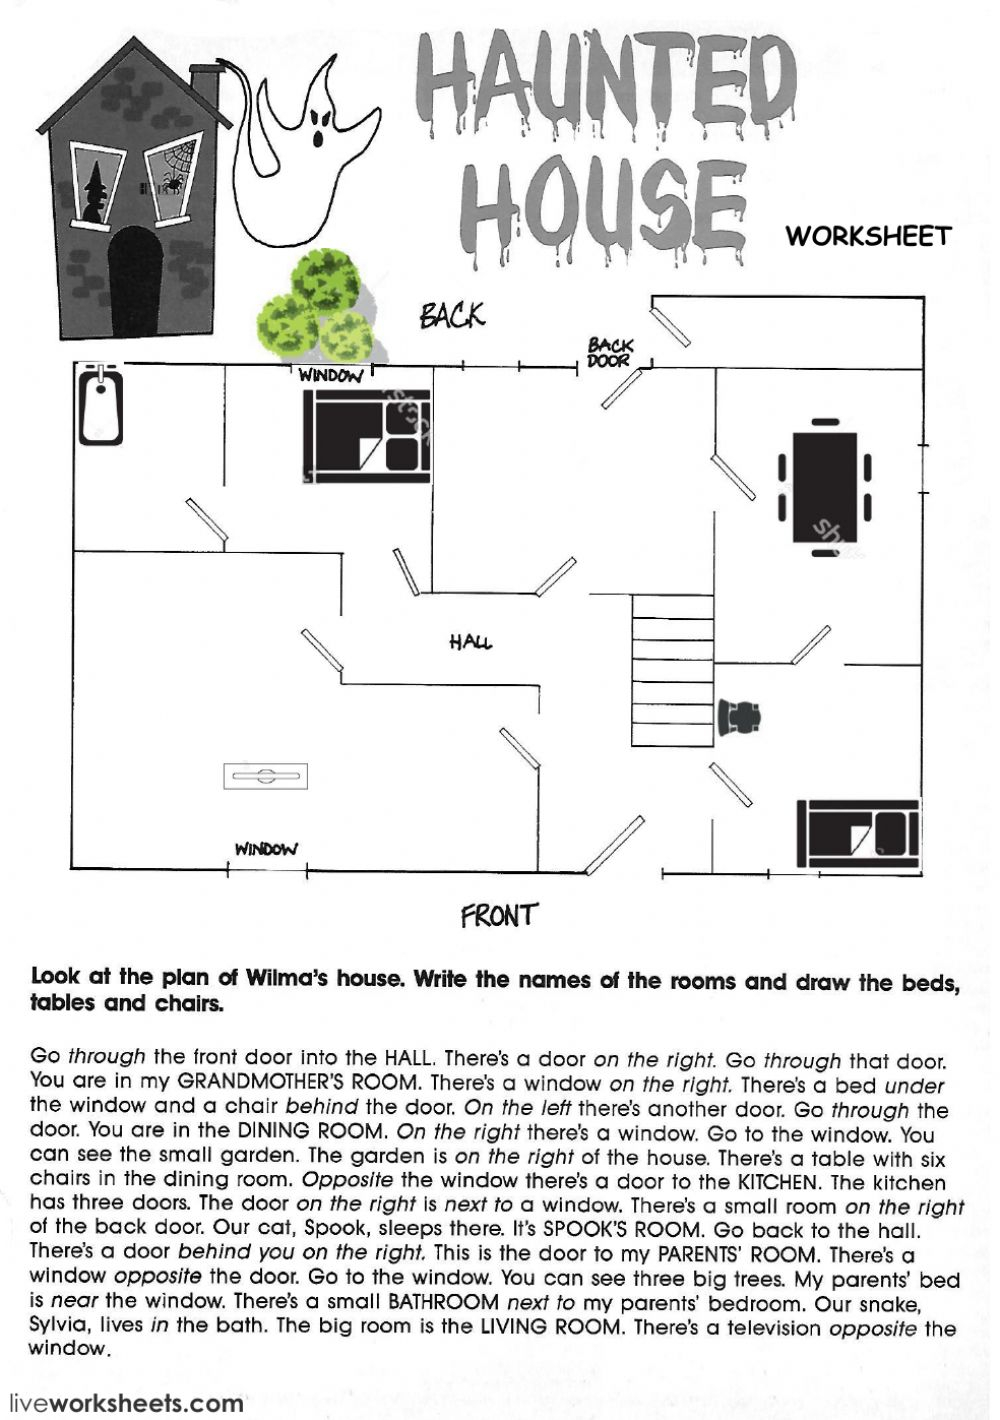 The Haunted House Worksheet